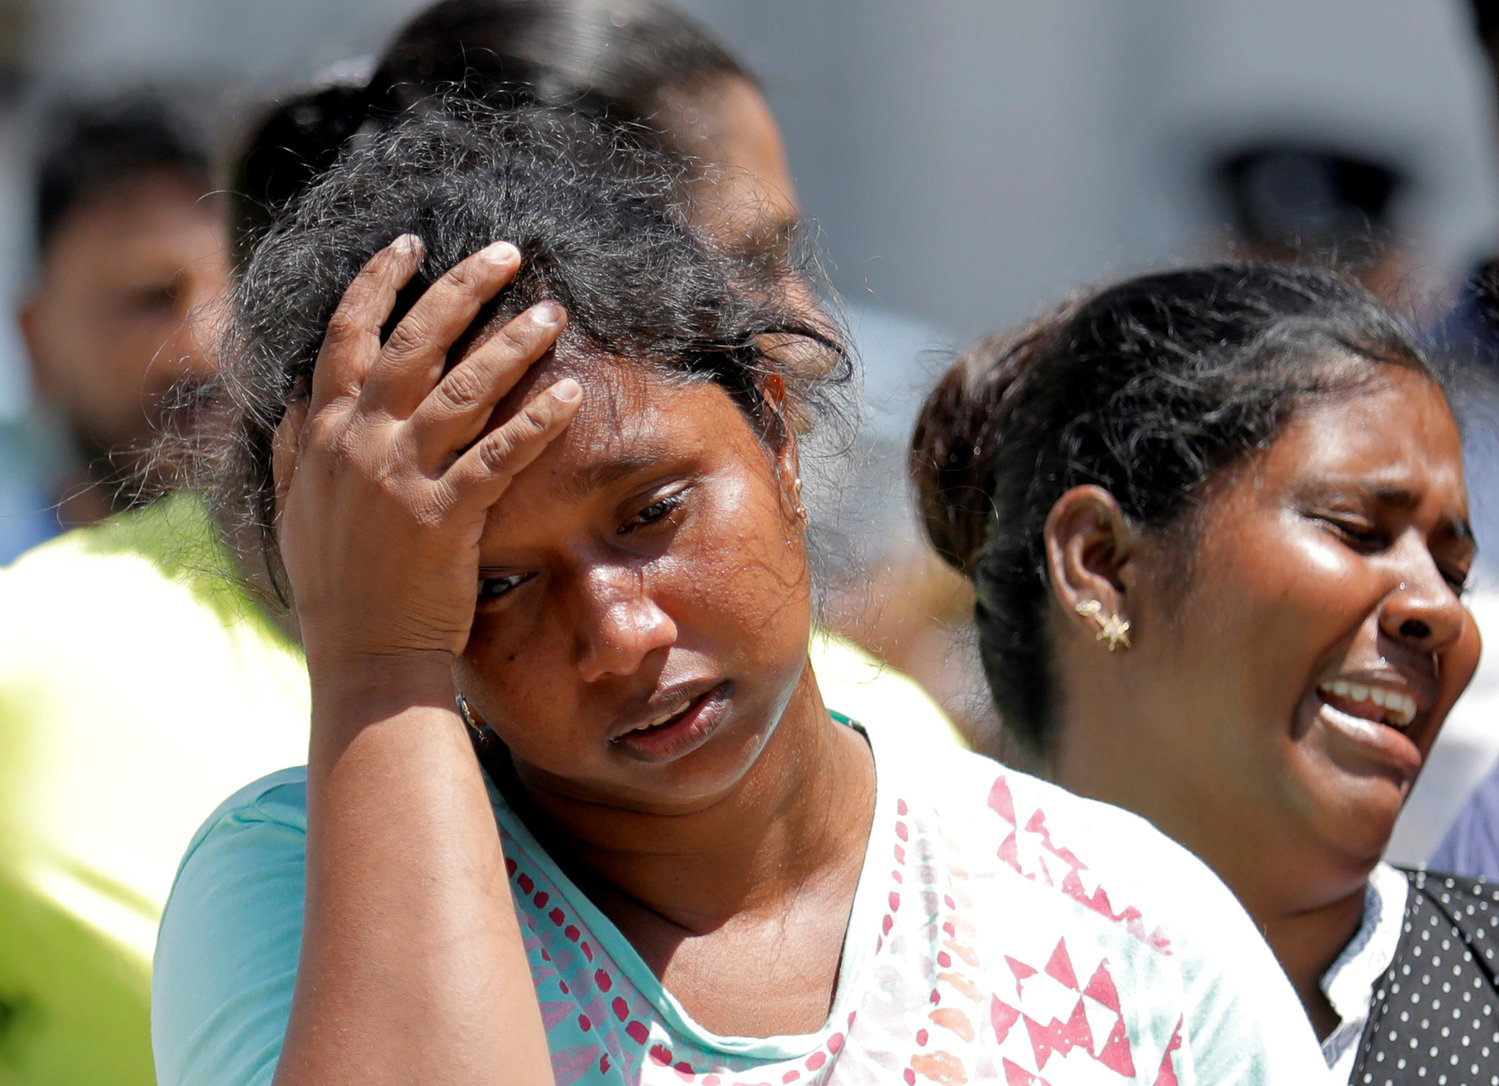 Relatives of victims react at a police mortuary in Colombo, Sri Lanka, after bomb blasts ripped through churches and luxury hotels on Easter April 22, 2019. Sri Lankan officials reported 290 confirmed deaths from the eight blasts at churches and hotels in three cities in apparently coordinated attacks.